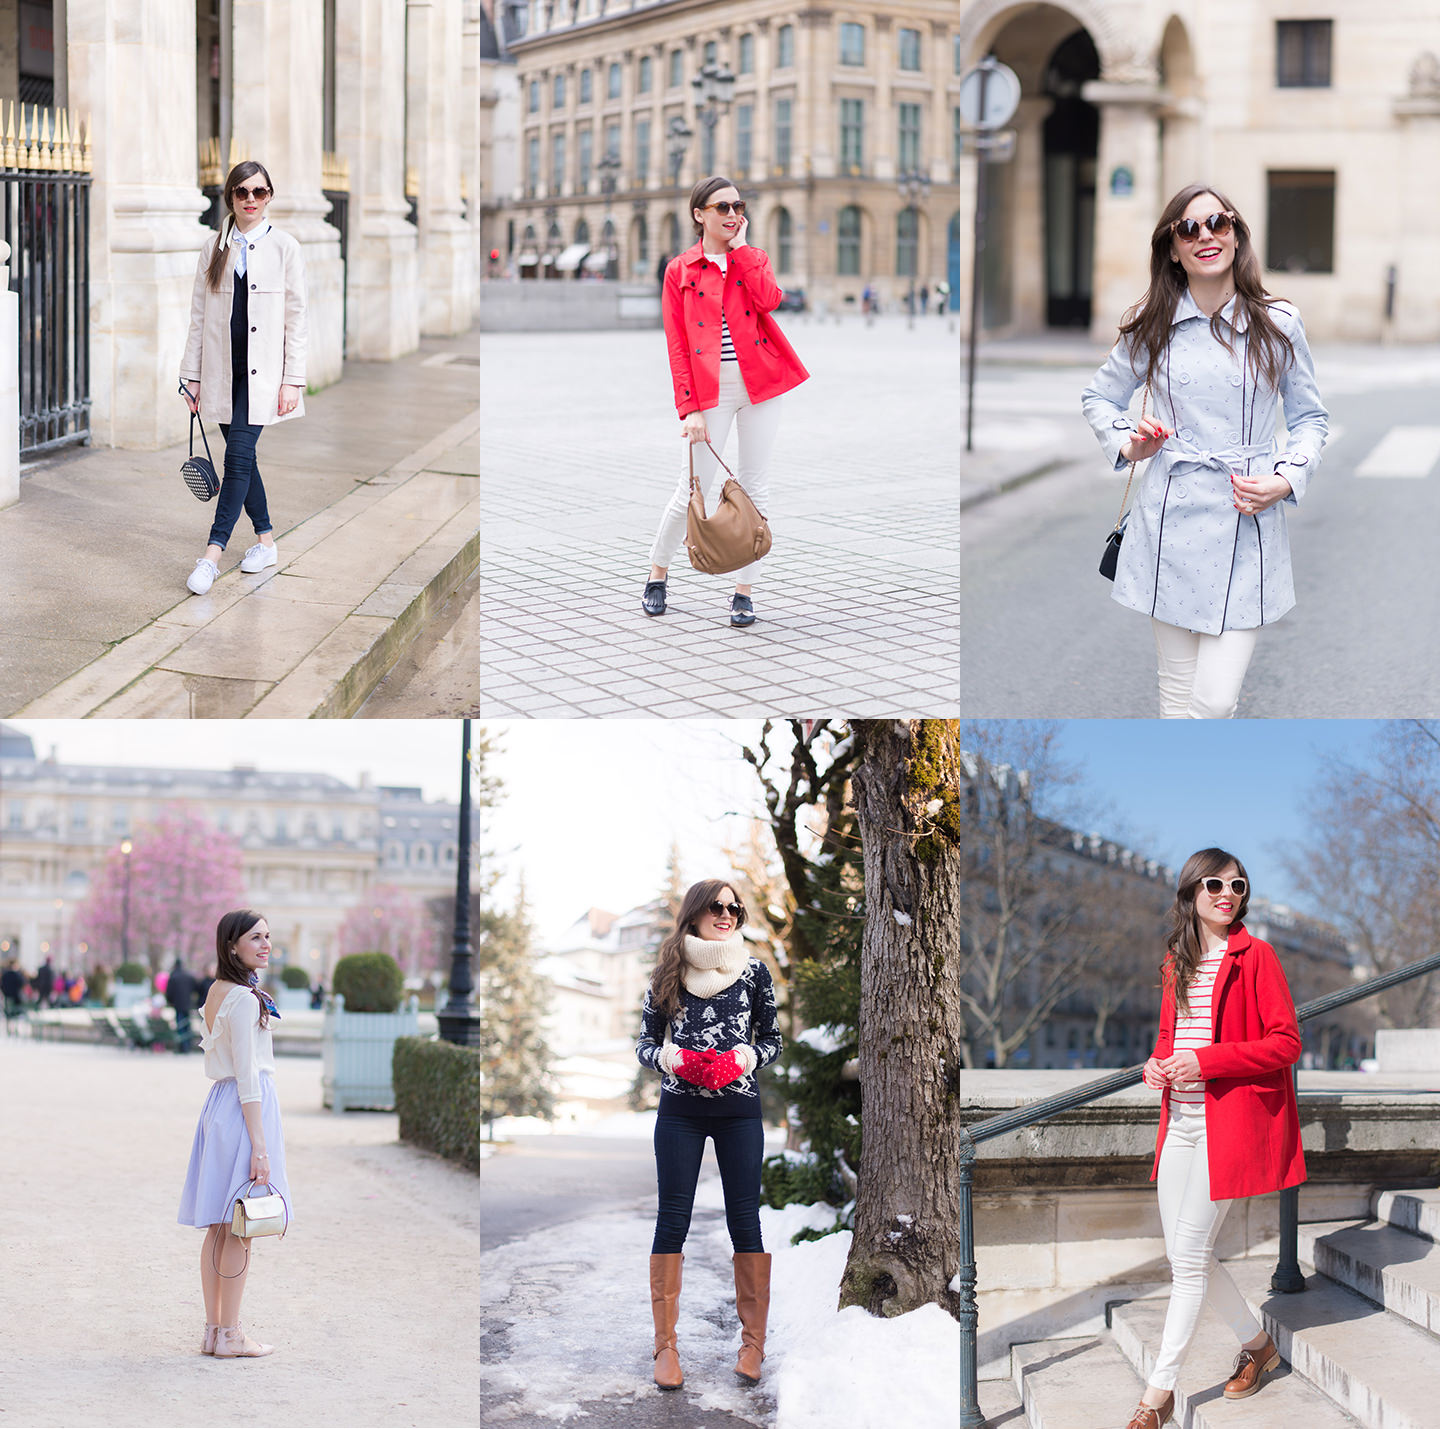 Blog-Mode-And-The-City-Lifestyle-Best-Of-2016-Meilleurs-Looks-Mars-2016